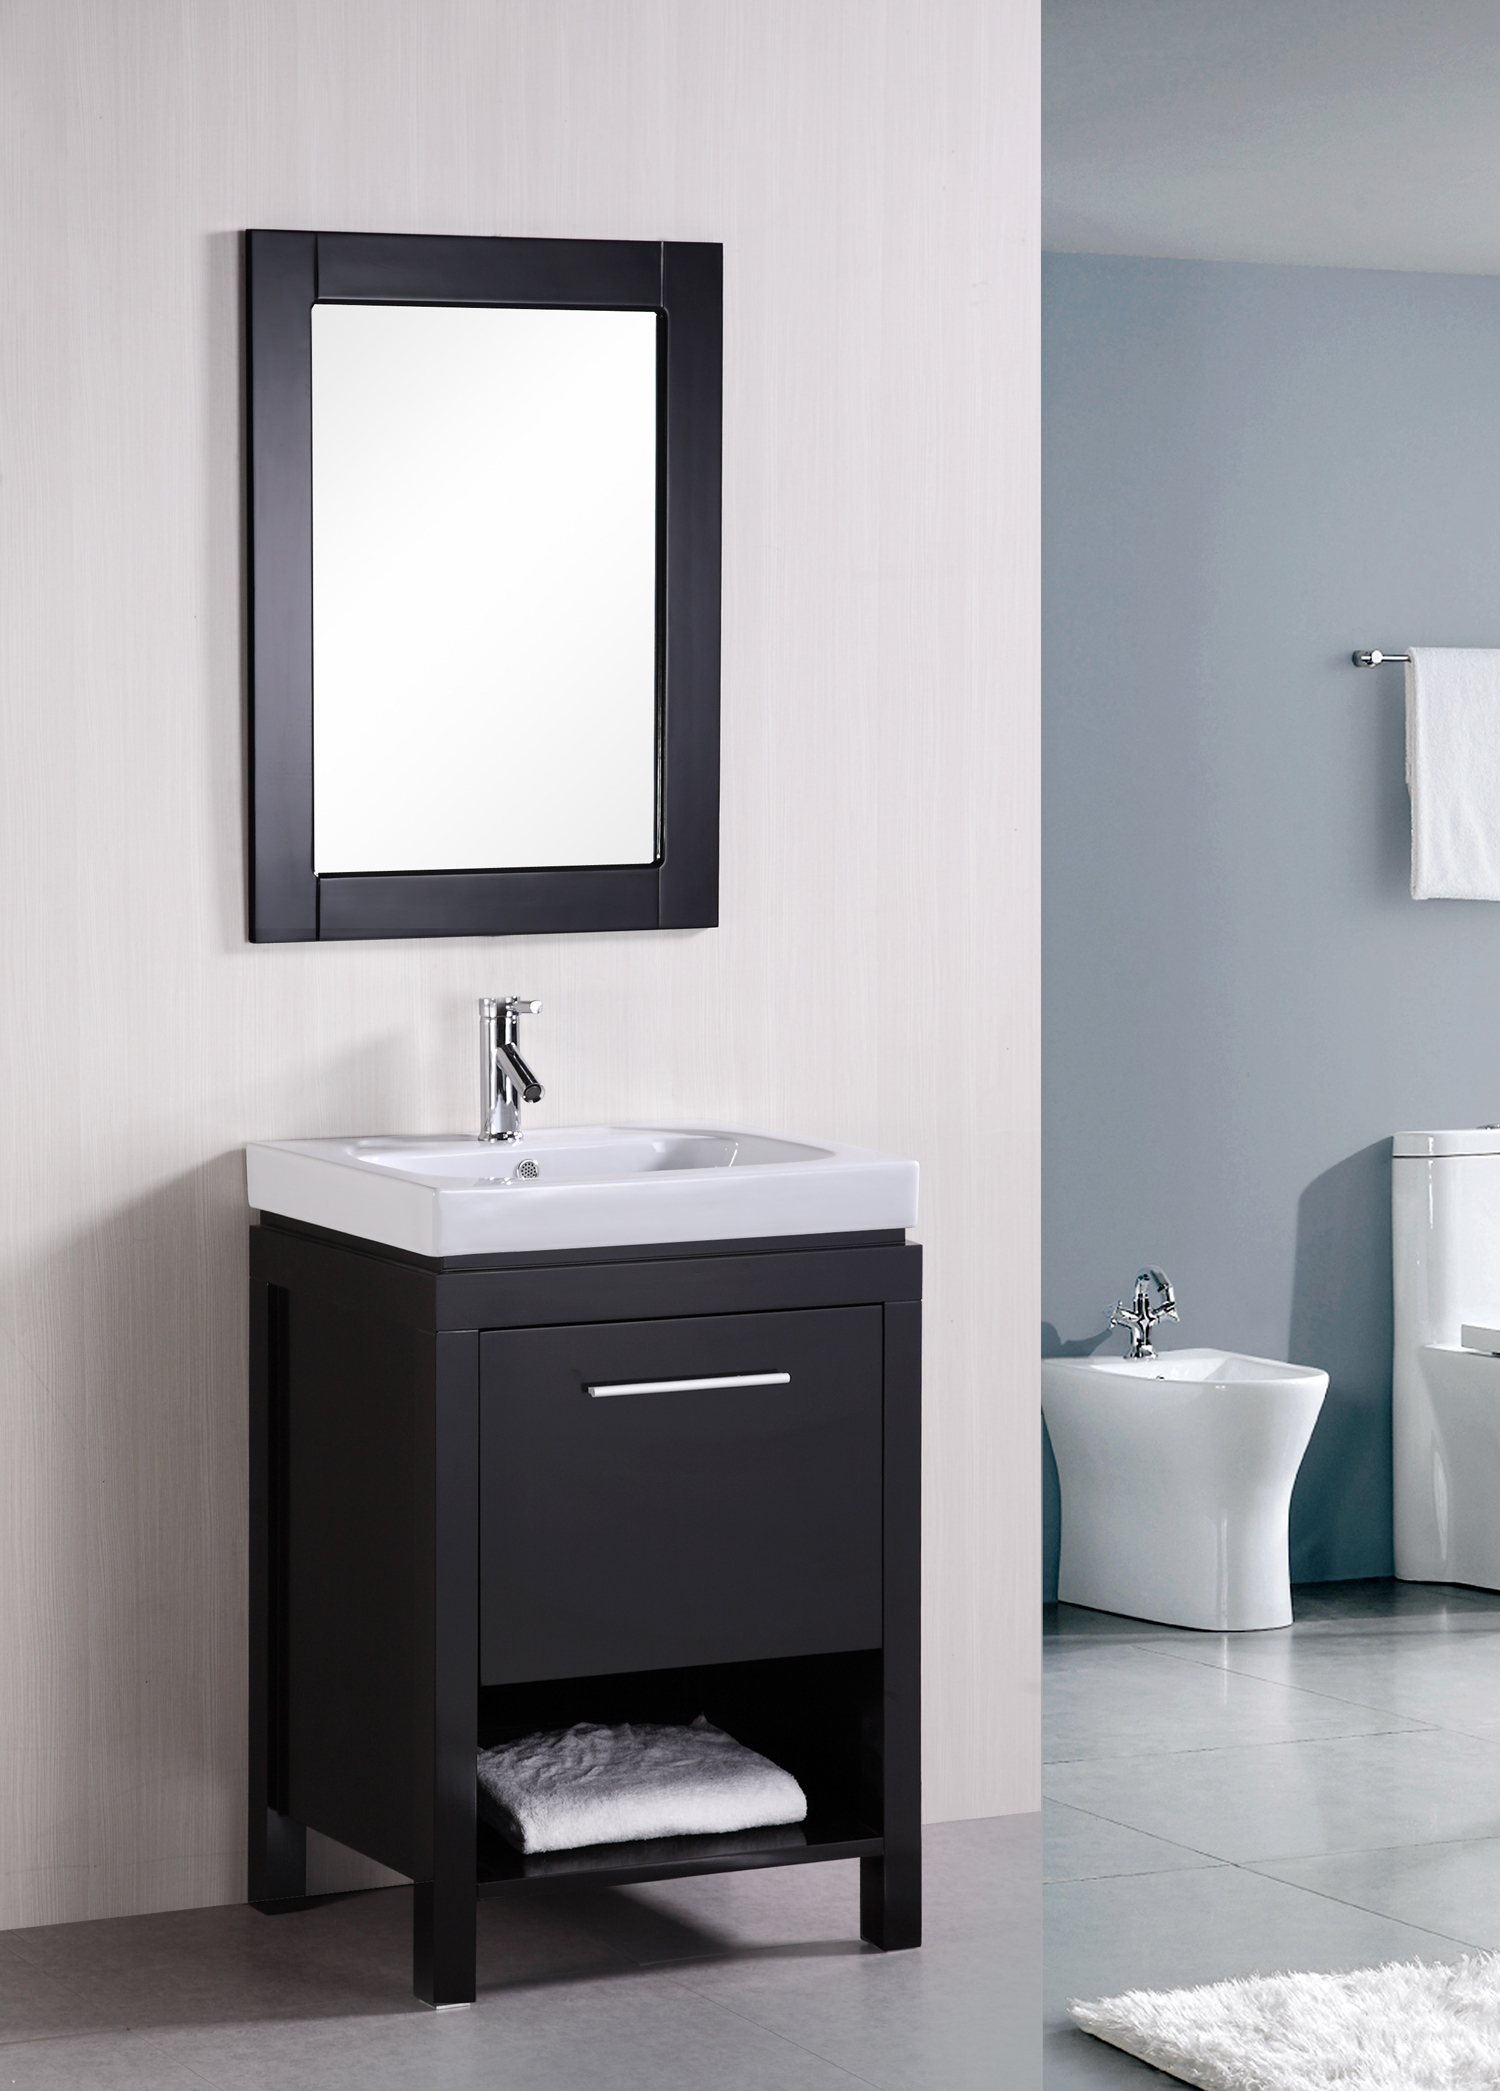 24 New York Dec091a Single Sink Vanity Set Bathroom Vanities